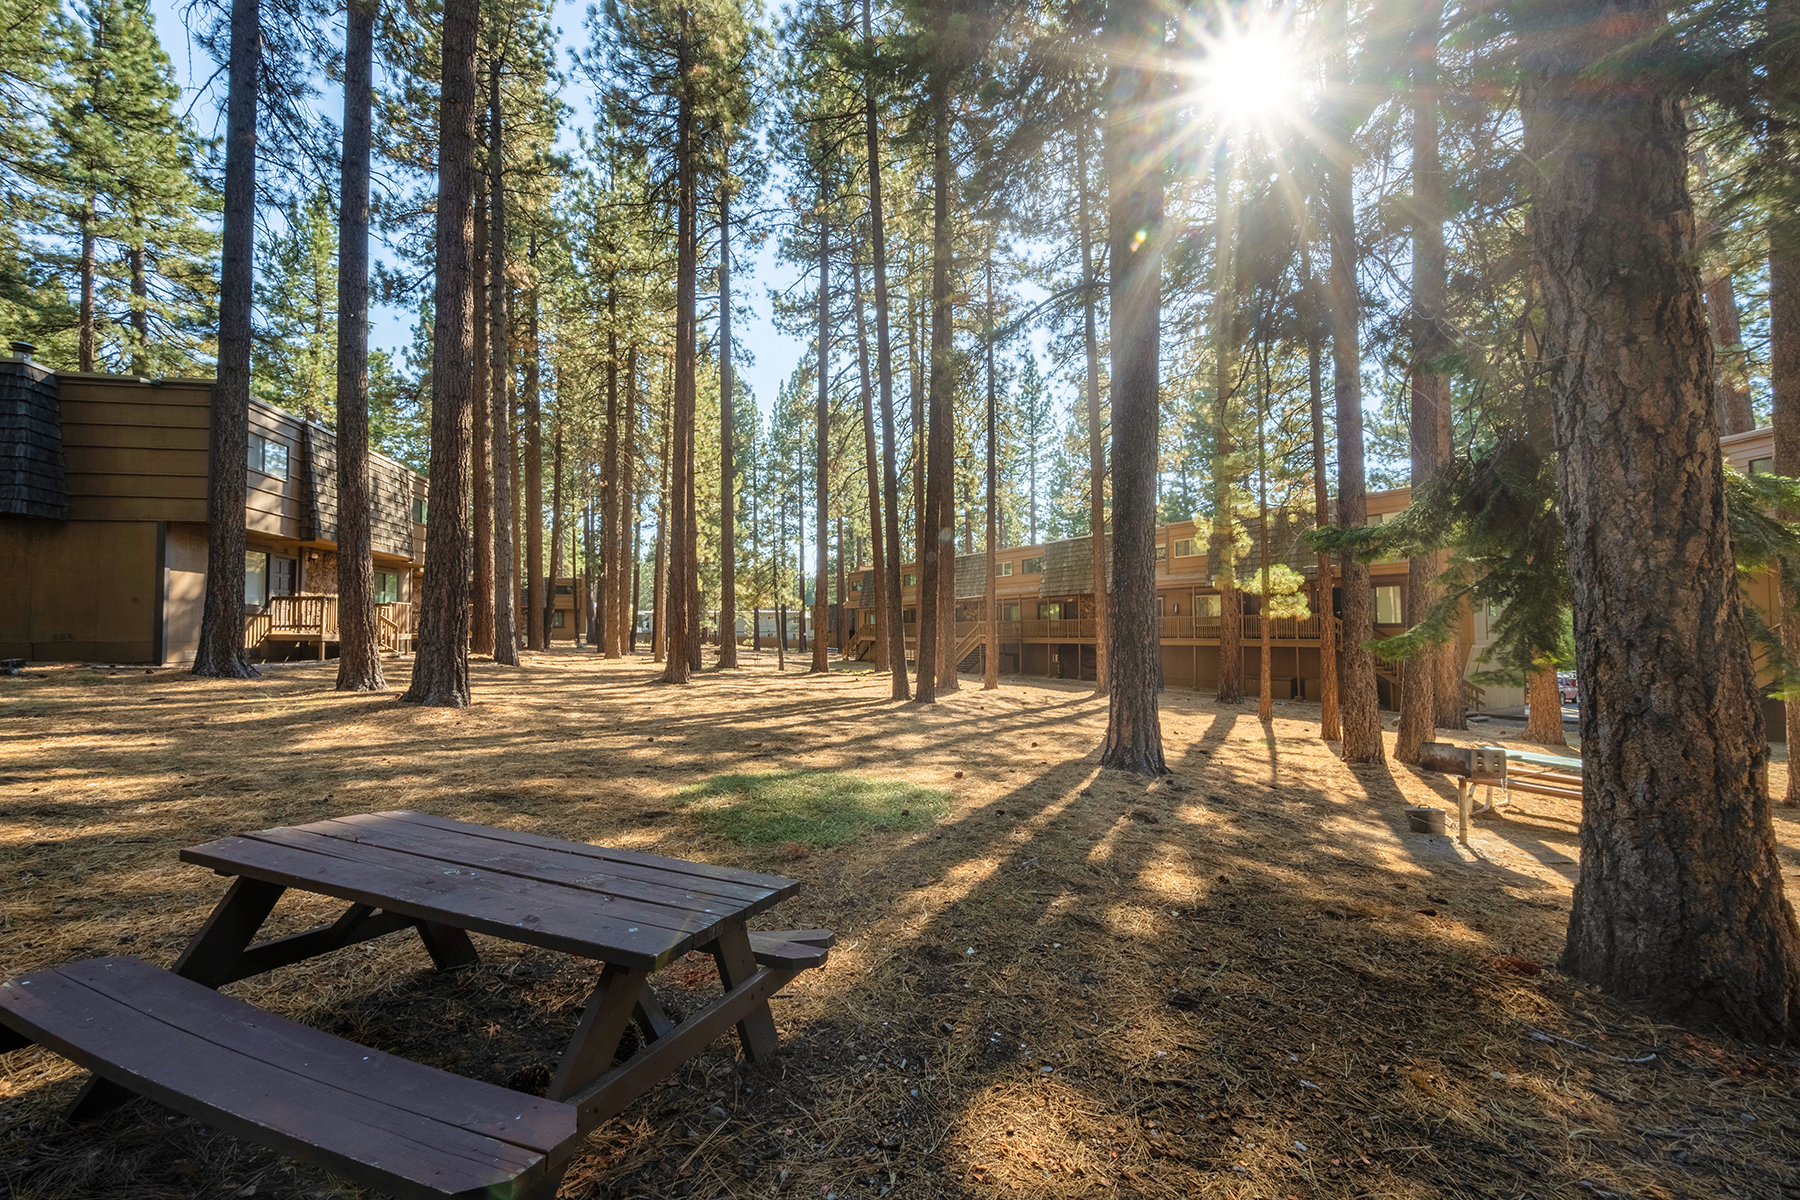 Additional photo for property listing at 1200 Wildwood Ave #32 1200 Wildwood #32 South Lake Tahoe, California 96150 United States